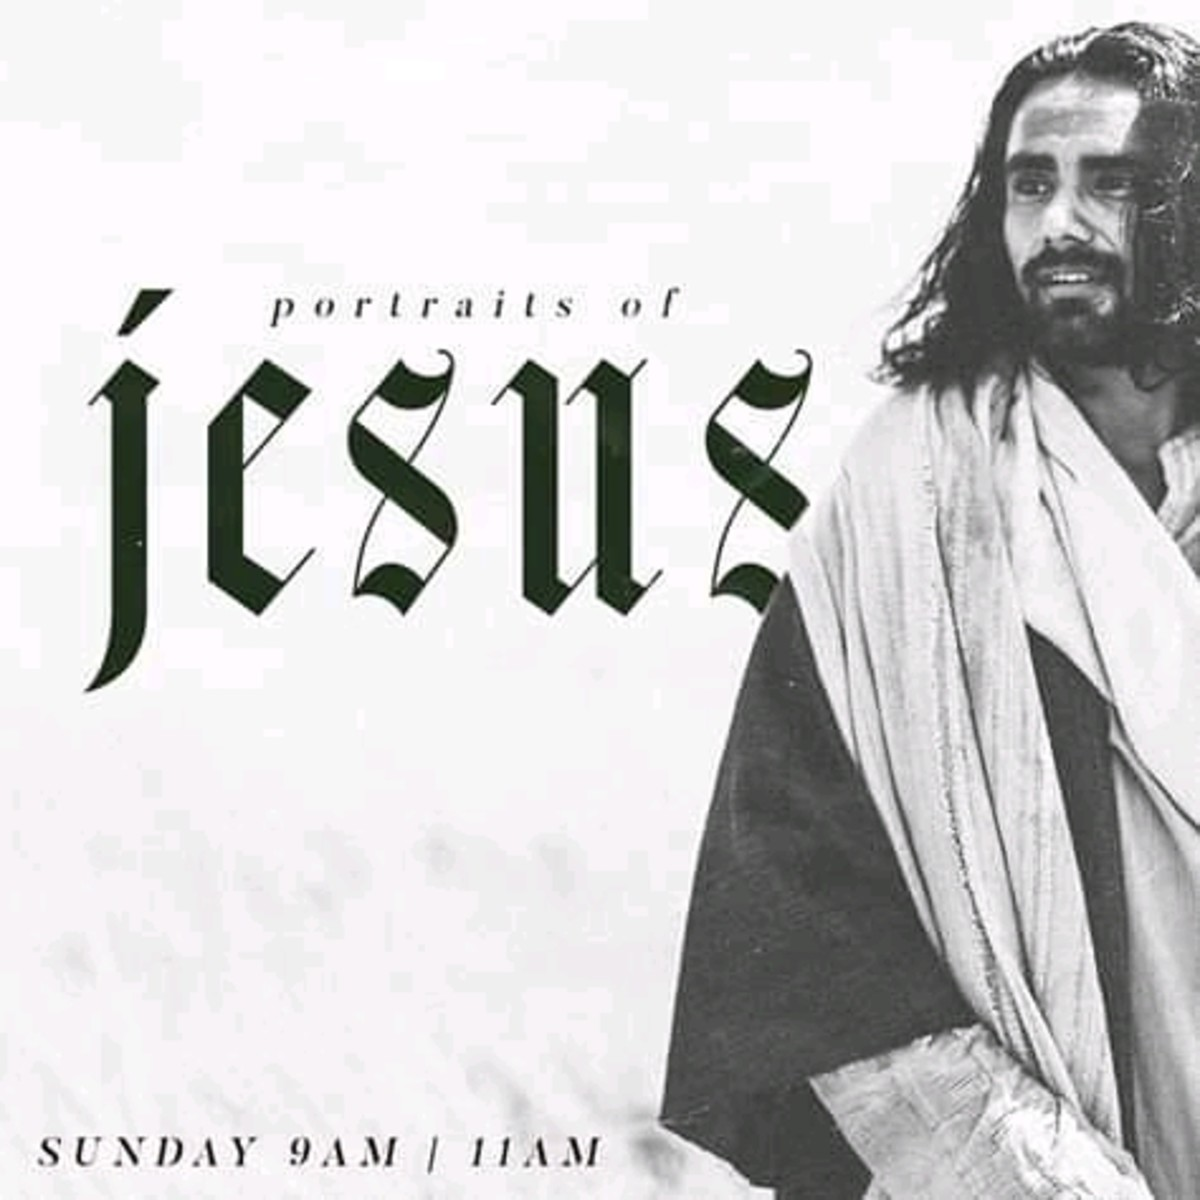 jesus-as-the-son-of-god-and-the-son-of-man-contradicting